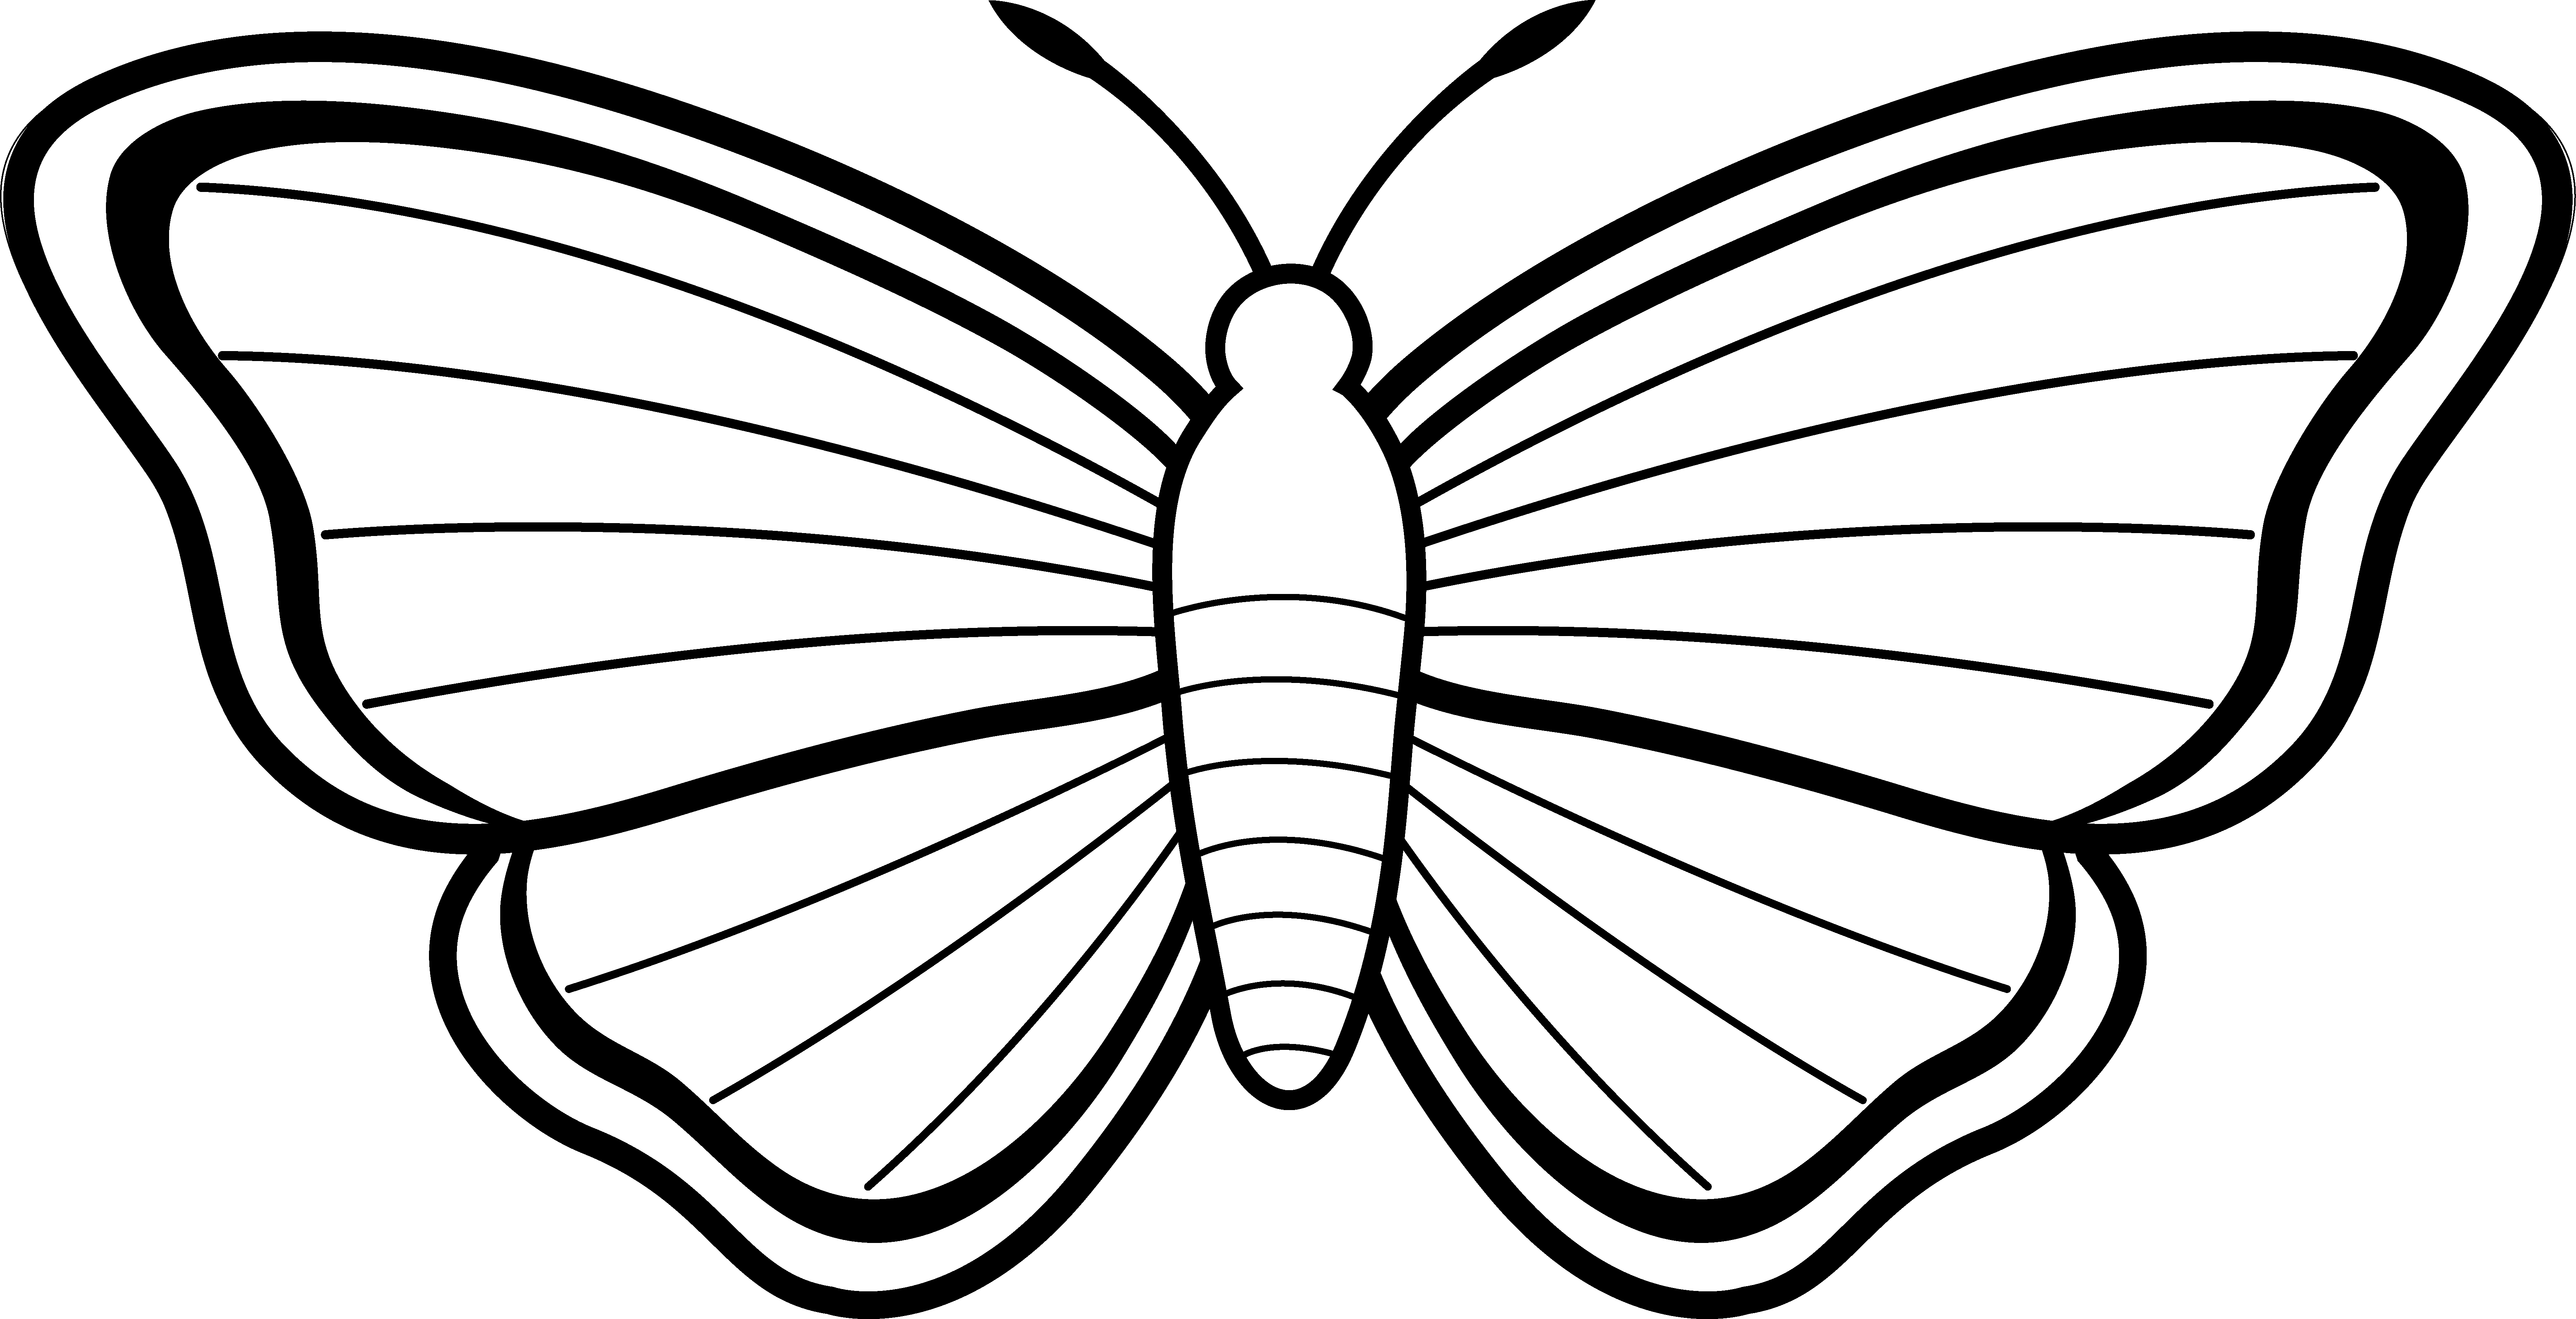 Butterfly Flying Outline Clipart-butterfly flying outline clipart-3